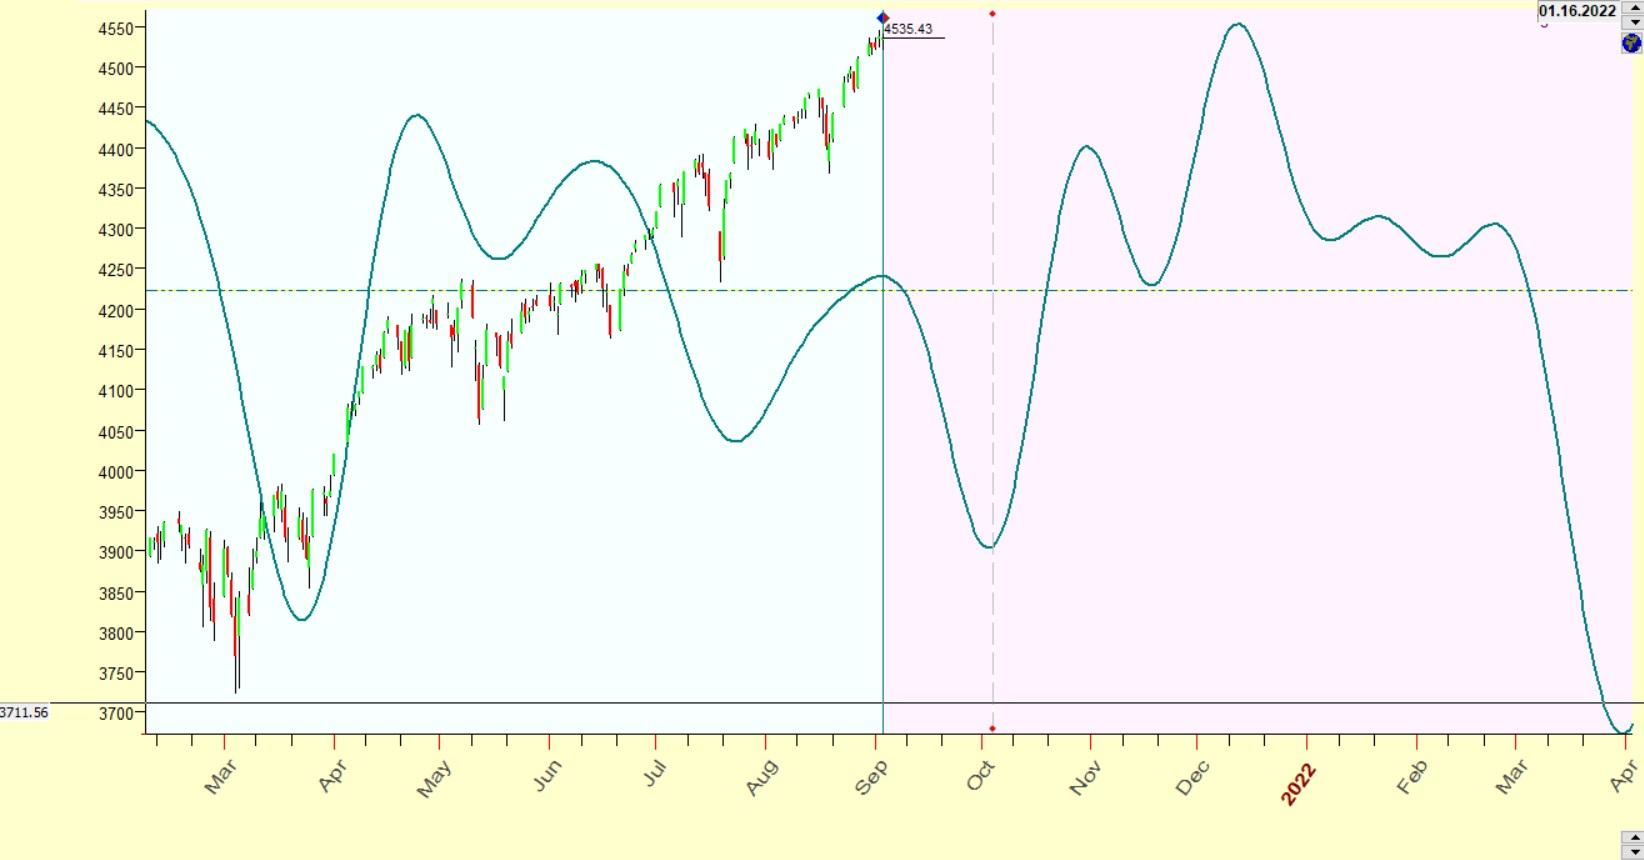 sp500 cycles september 2021